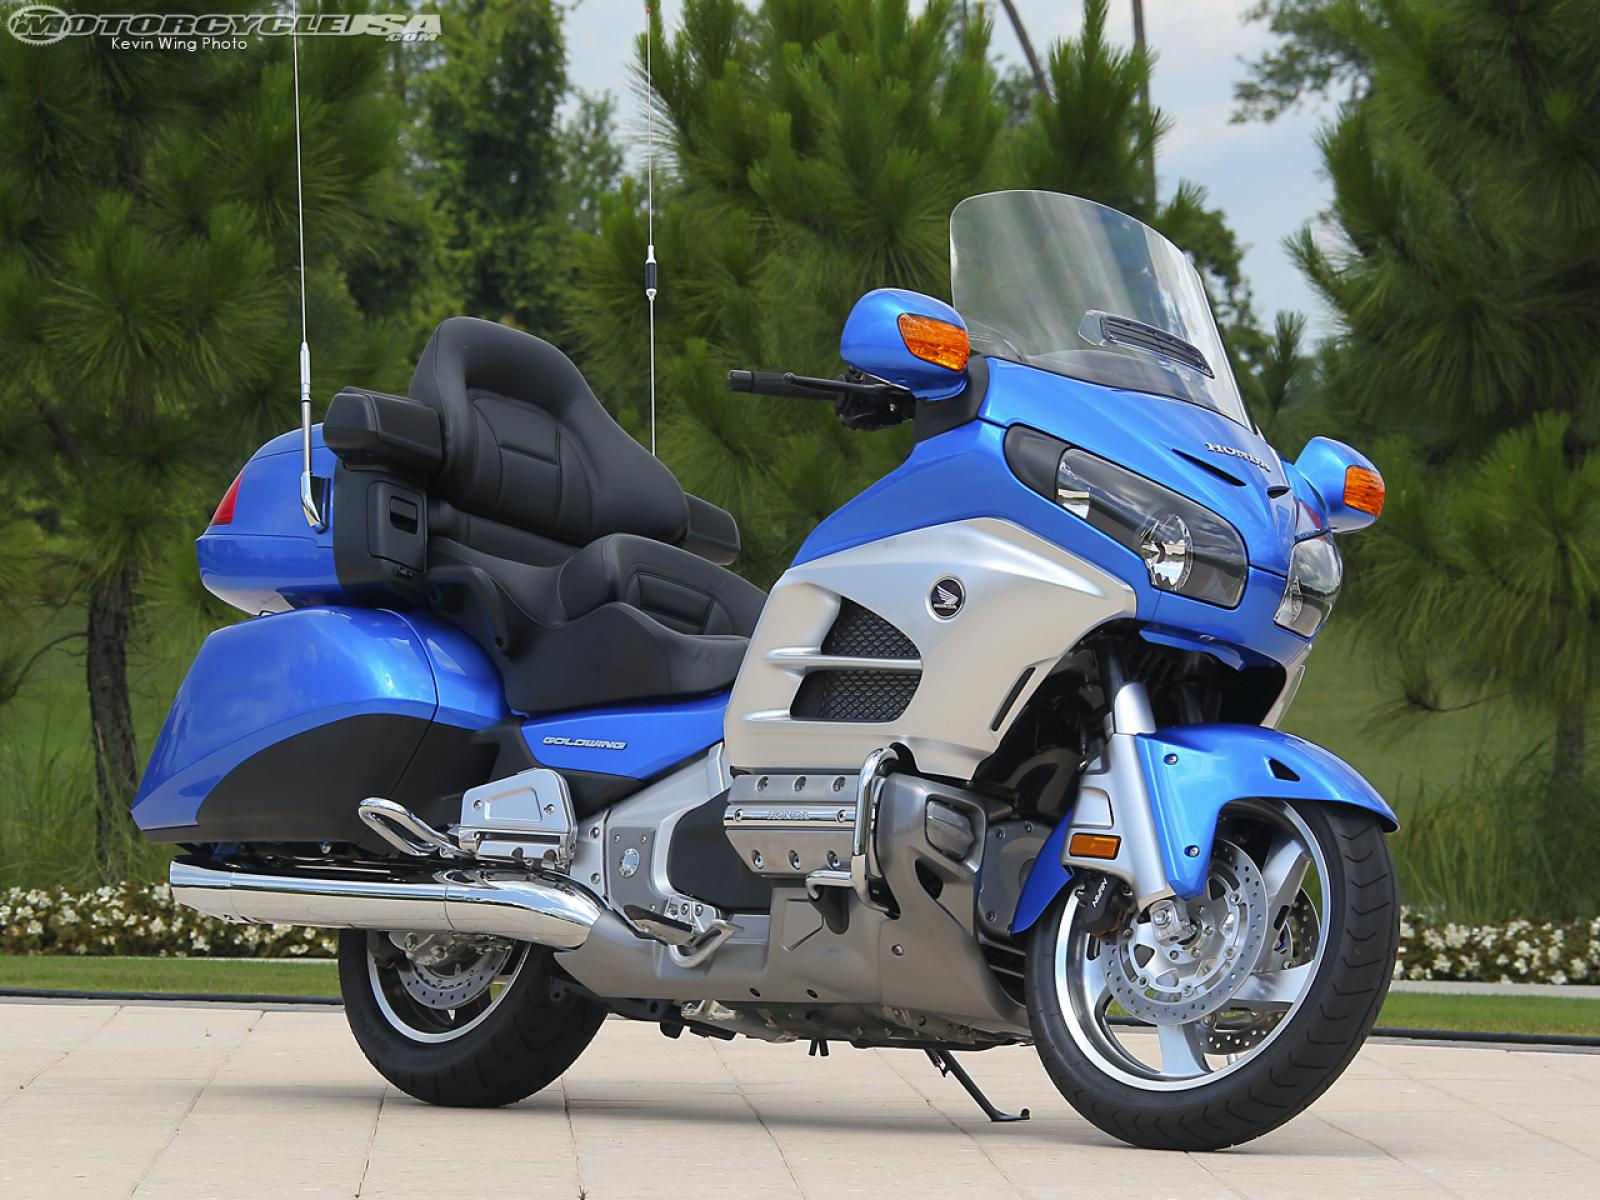 2012 honda gl1800 gold wing moto zombdrive com. Black Bedroom Furniture Sets. Home Design Ideas